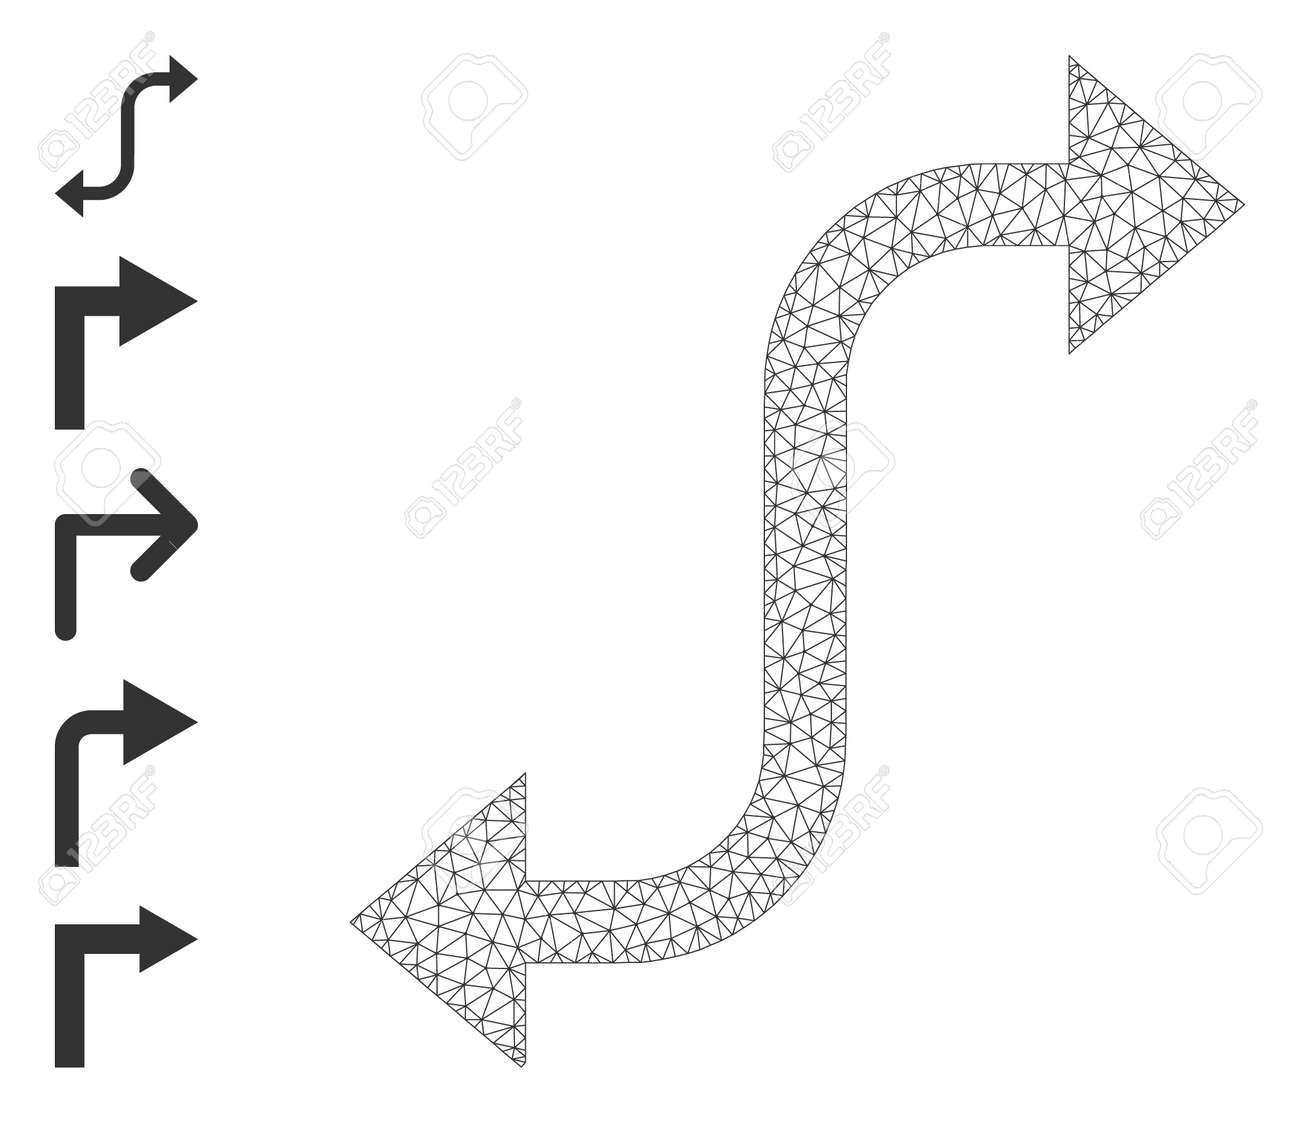 Mesh network opposite bend arrow icon with simple glyphs created from opposite bend arrow vector graphics. Carcass mesh polygonal opposite bend arrow. Wire carcass 2D network in vector format. - 172393995